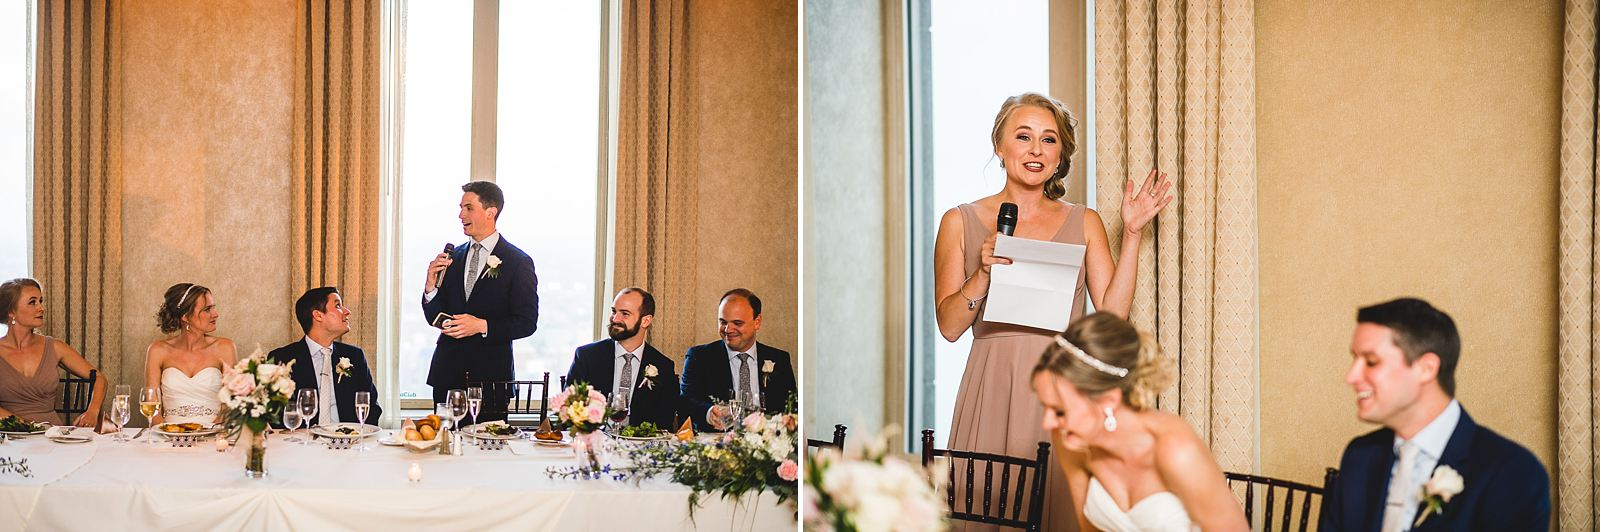 51 speeches - Mid America Club Wedding Photography / Hannah + Jay